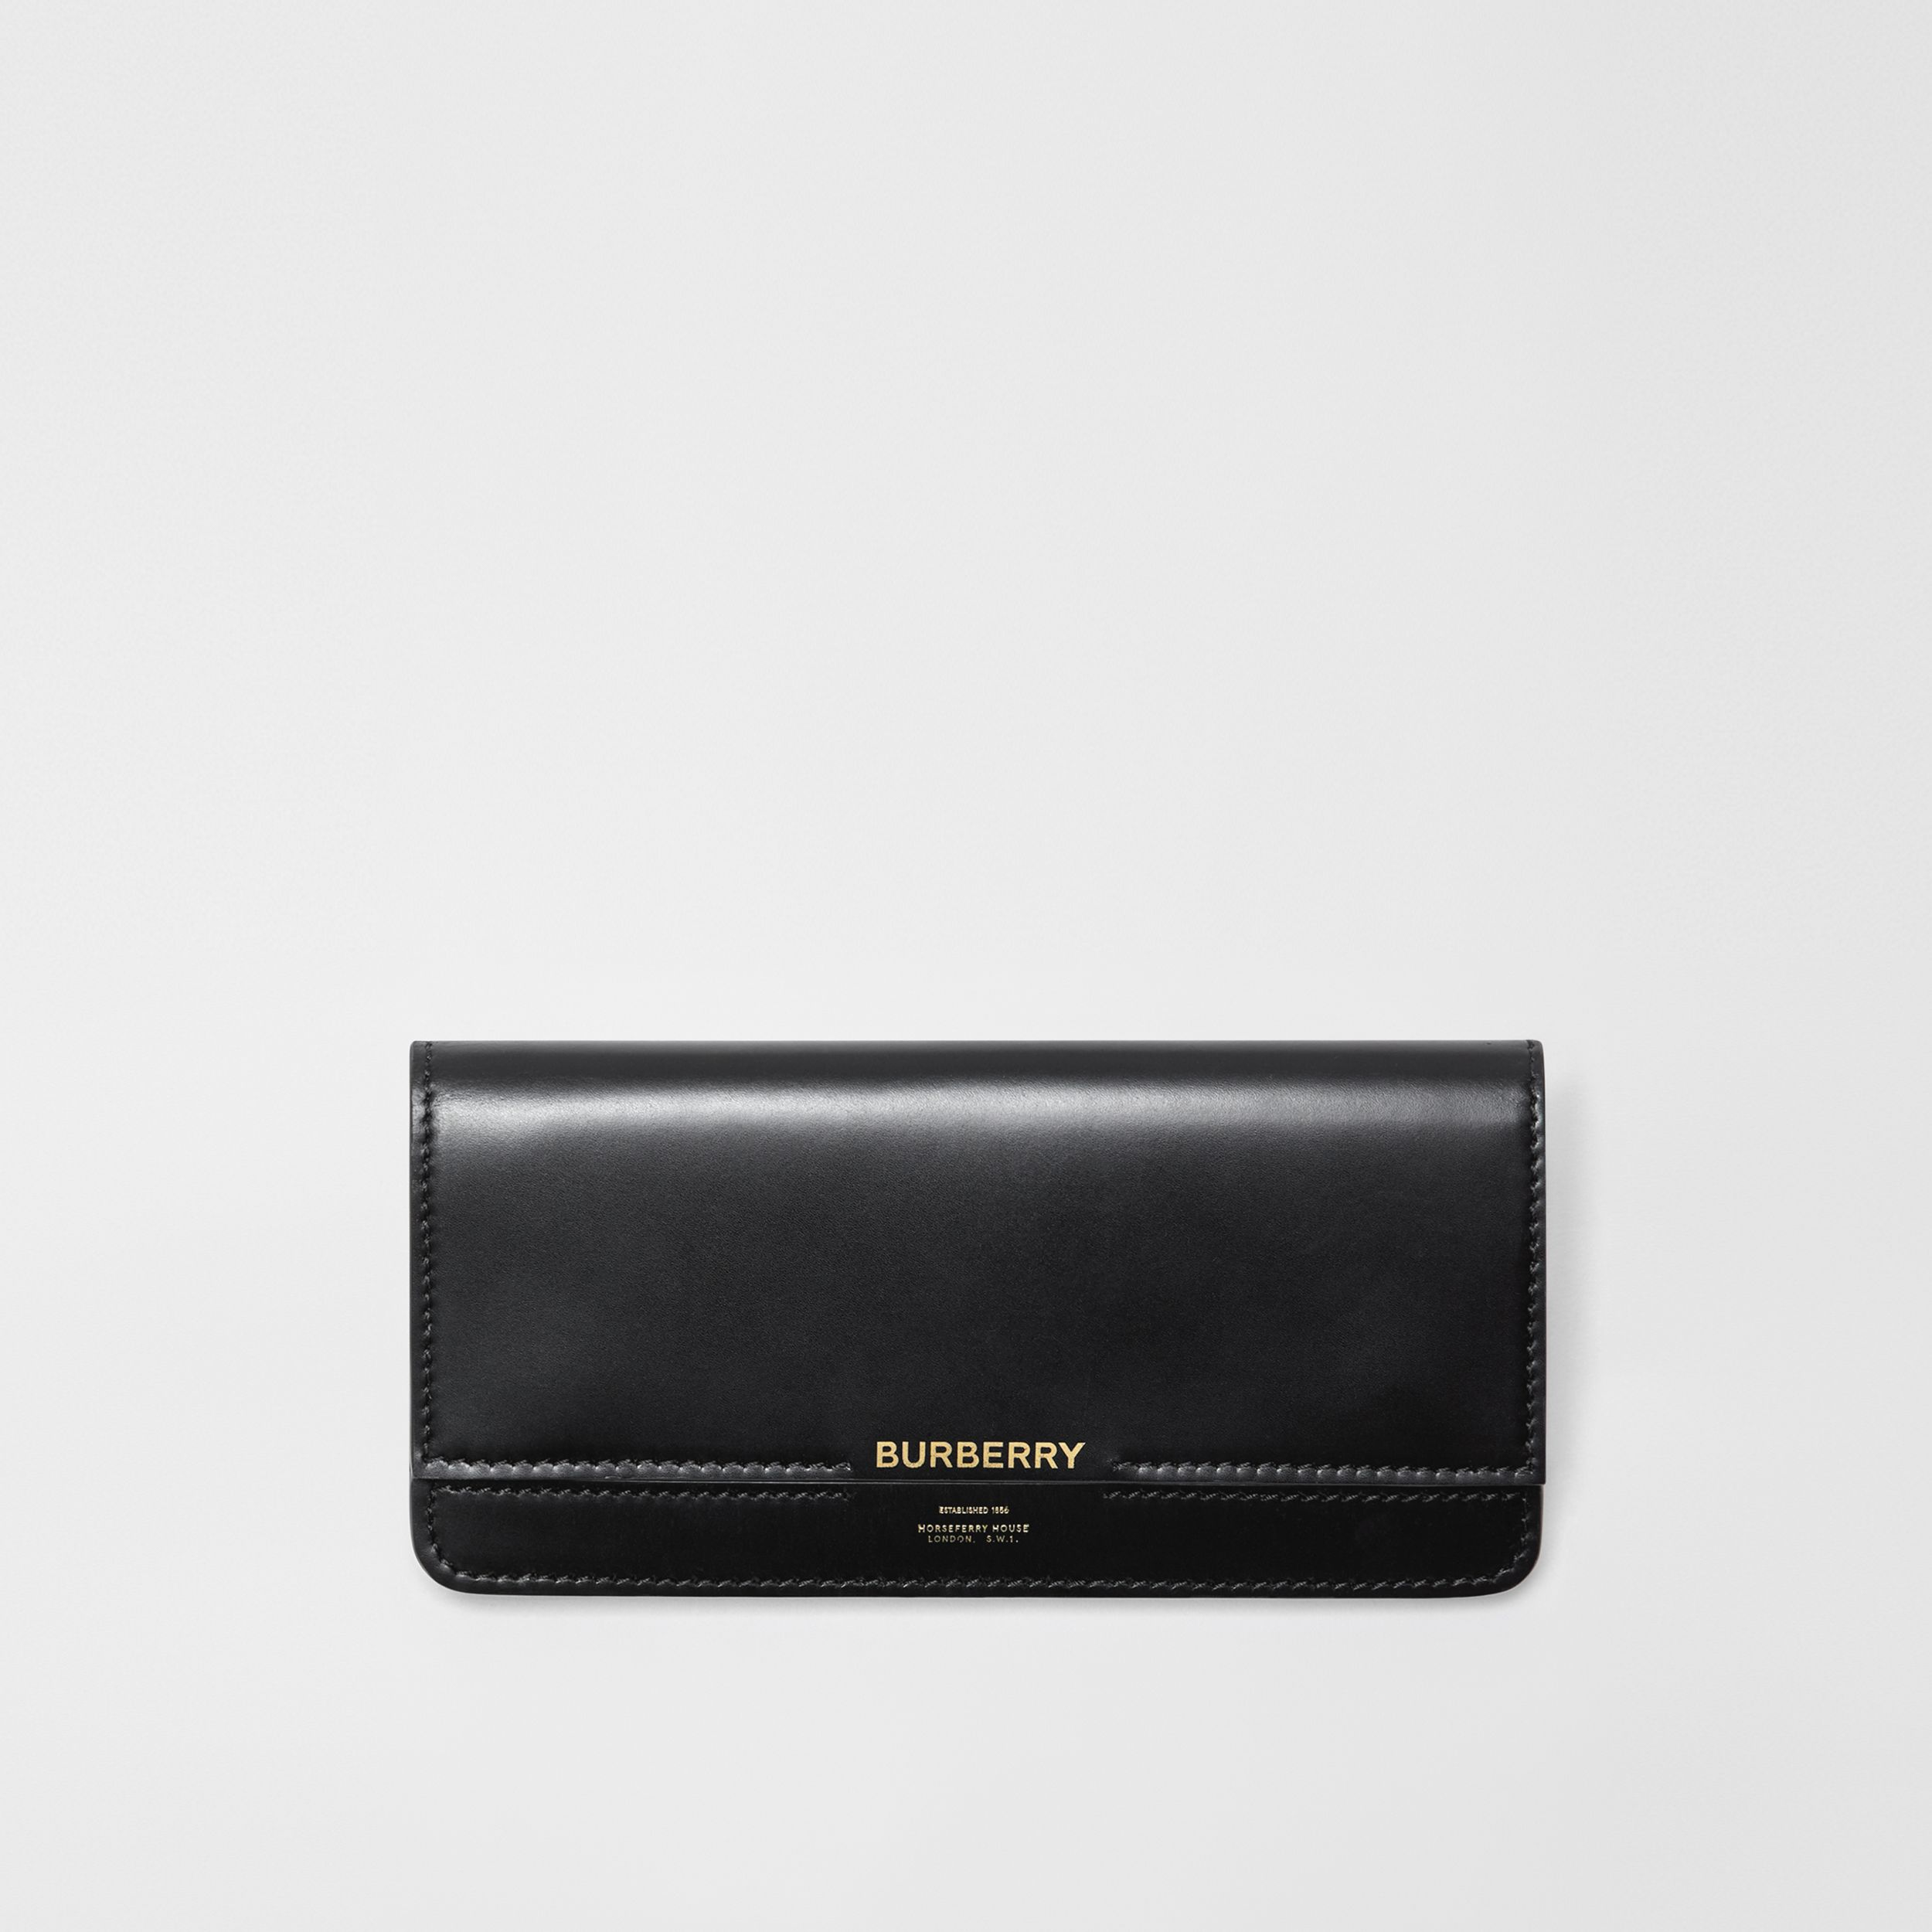 Horseferry Embossed Leather Continental Wallet in Black - Women | Burberry - 1